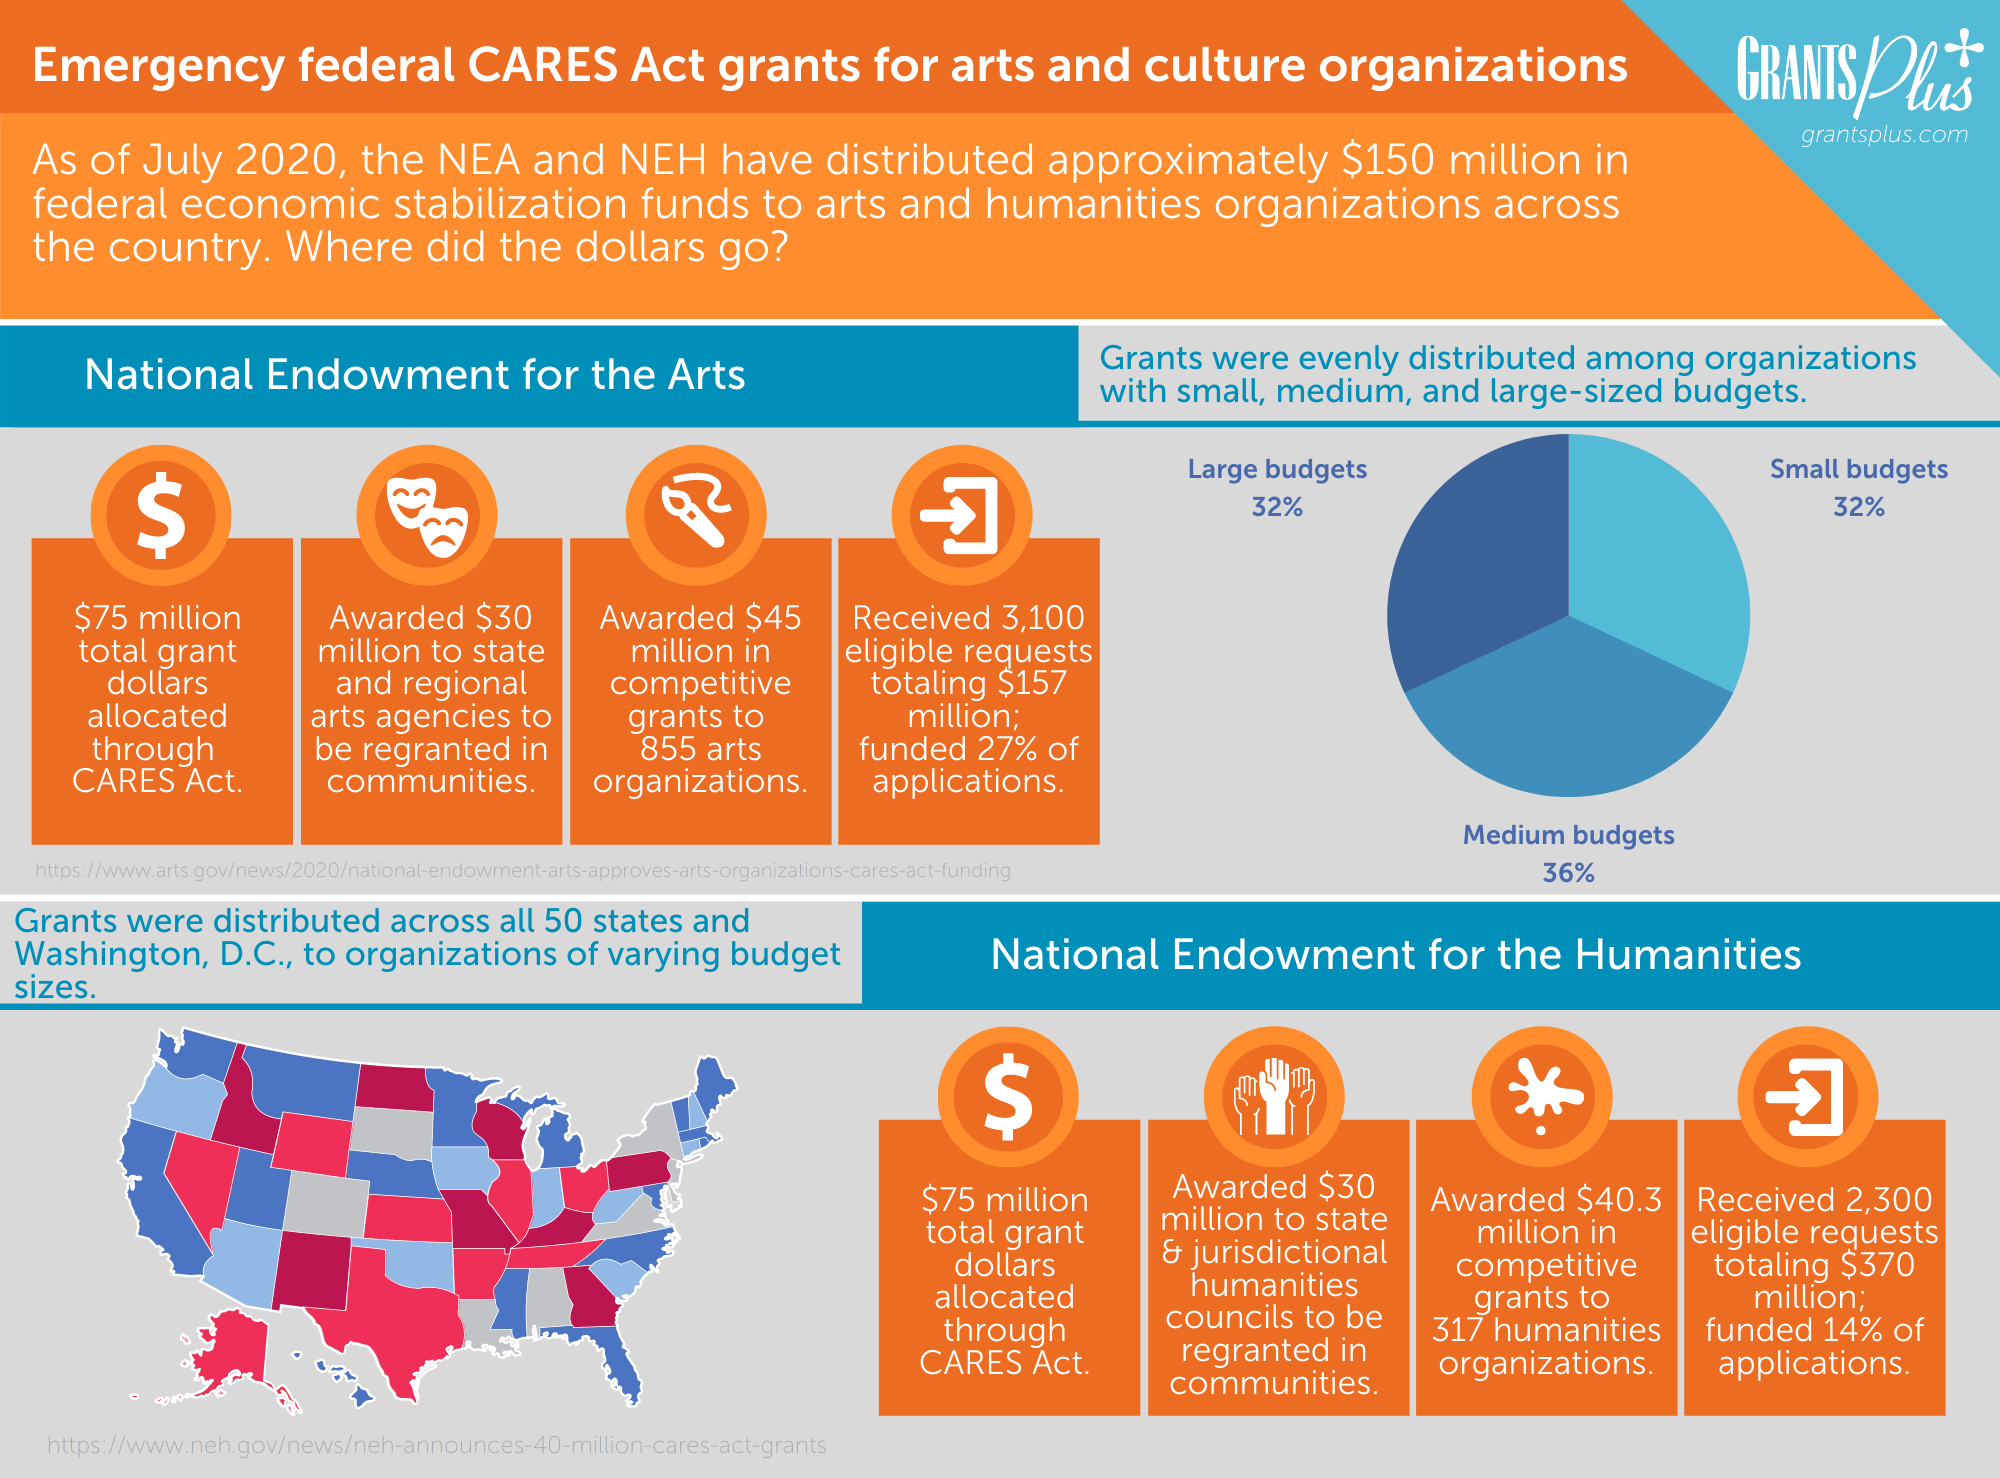 Infographic - Emergency federal CARES Act grants for arts and culture organizations